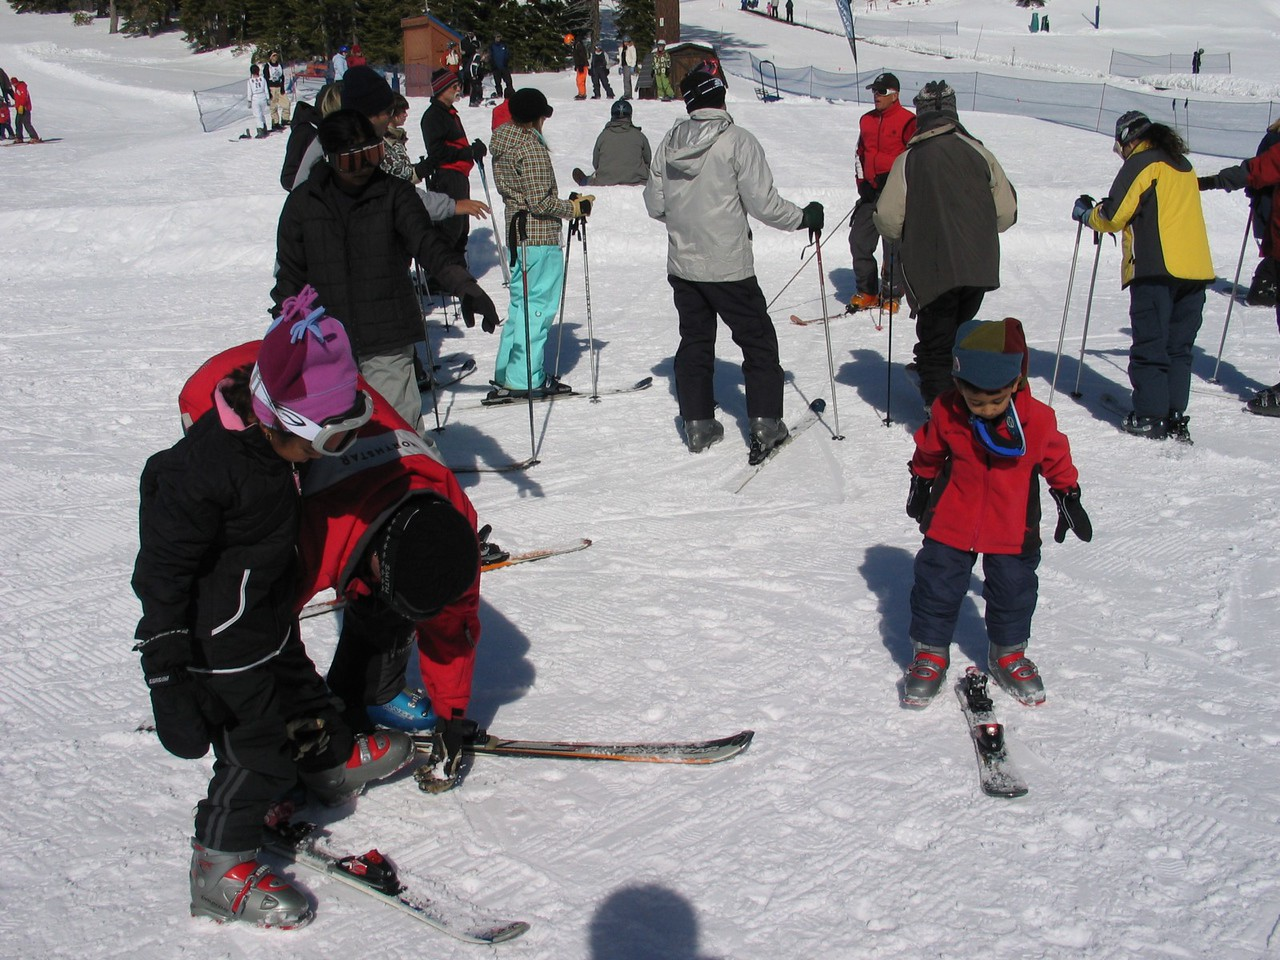 Resya and Rithik are trying on their skis for the first time!